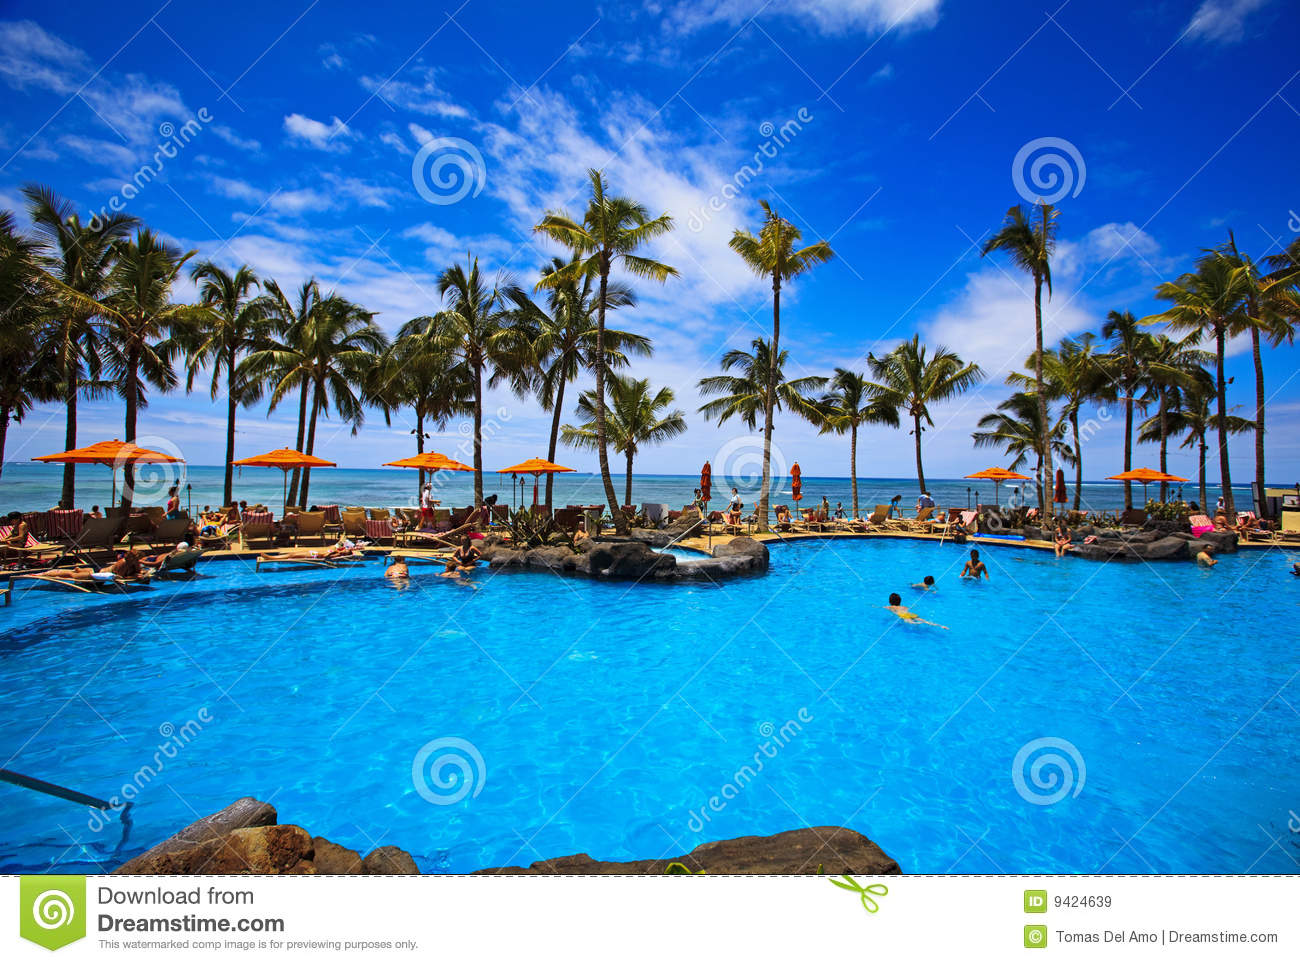 map of waikiki with Royalty Free Stock Images Swimming Pool Waikiki Beach Hawaii Image9424639 on Royalty Free Stock Photography Snowman Frame Image213107 further 1595783864 together with Photostream as well Maps Kahala OV likewise Royalty Free Stock Images Swimming Pool Waikiki Beach Hawaii Image9424639.